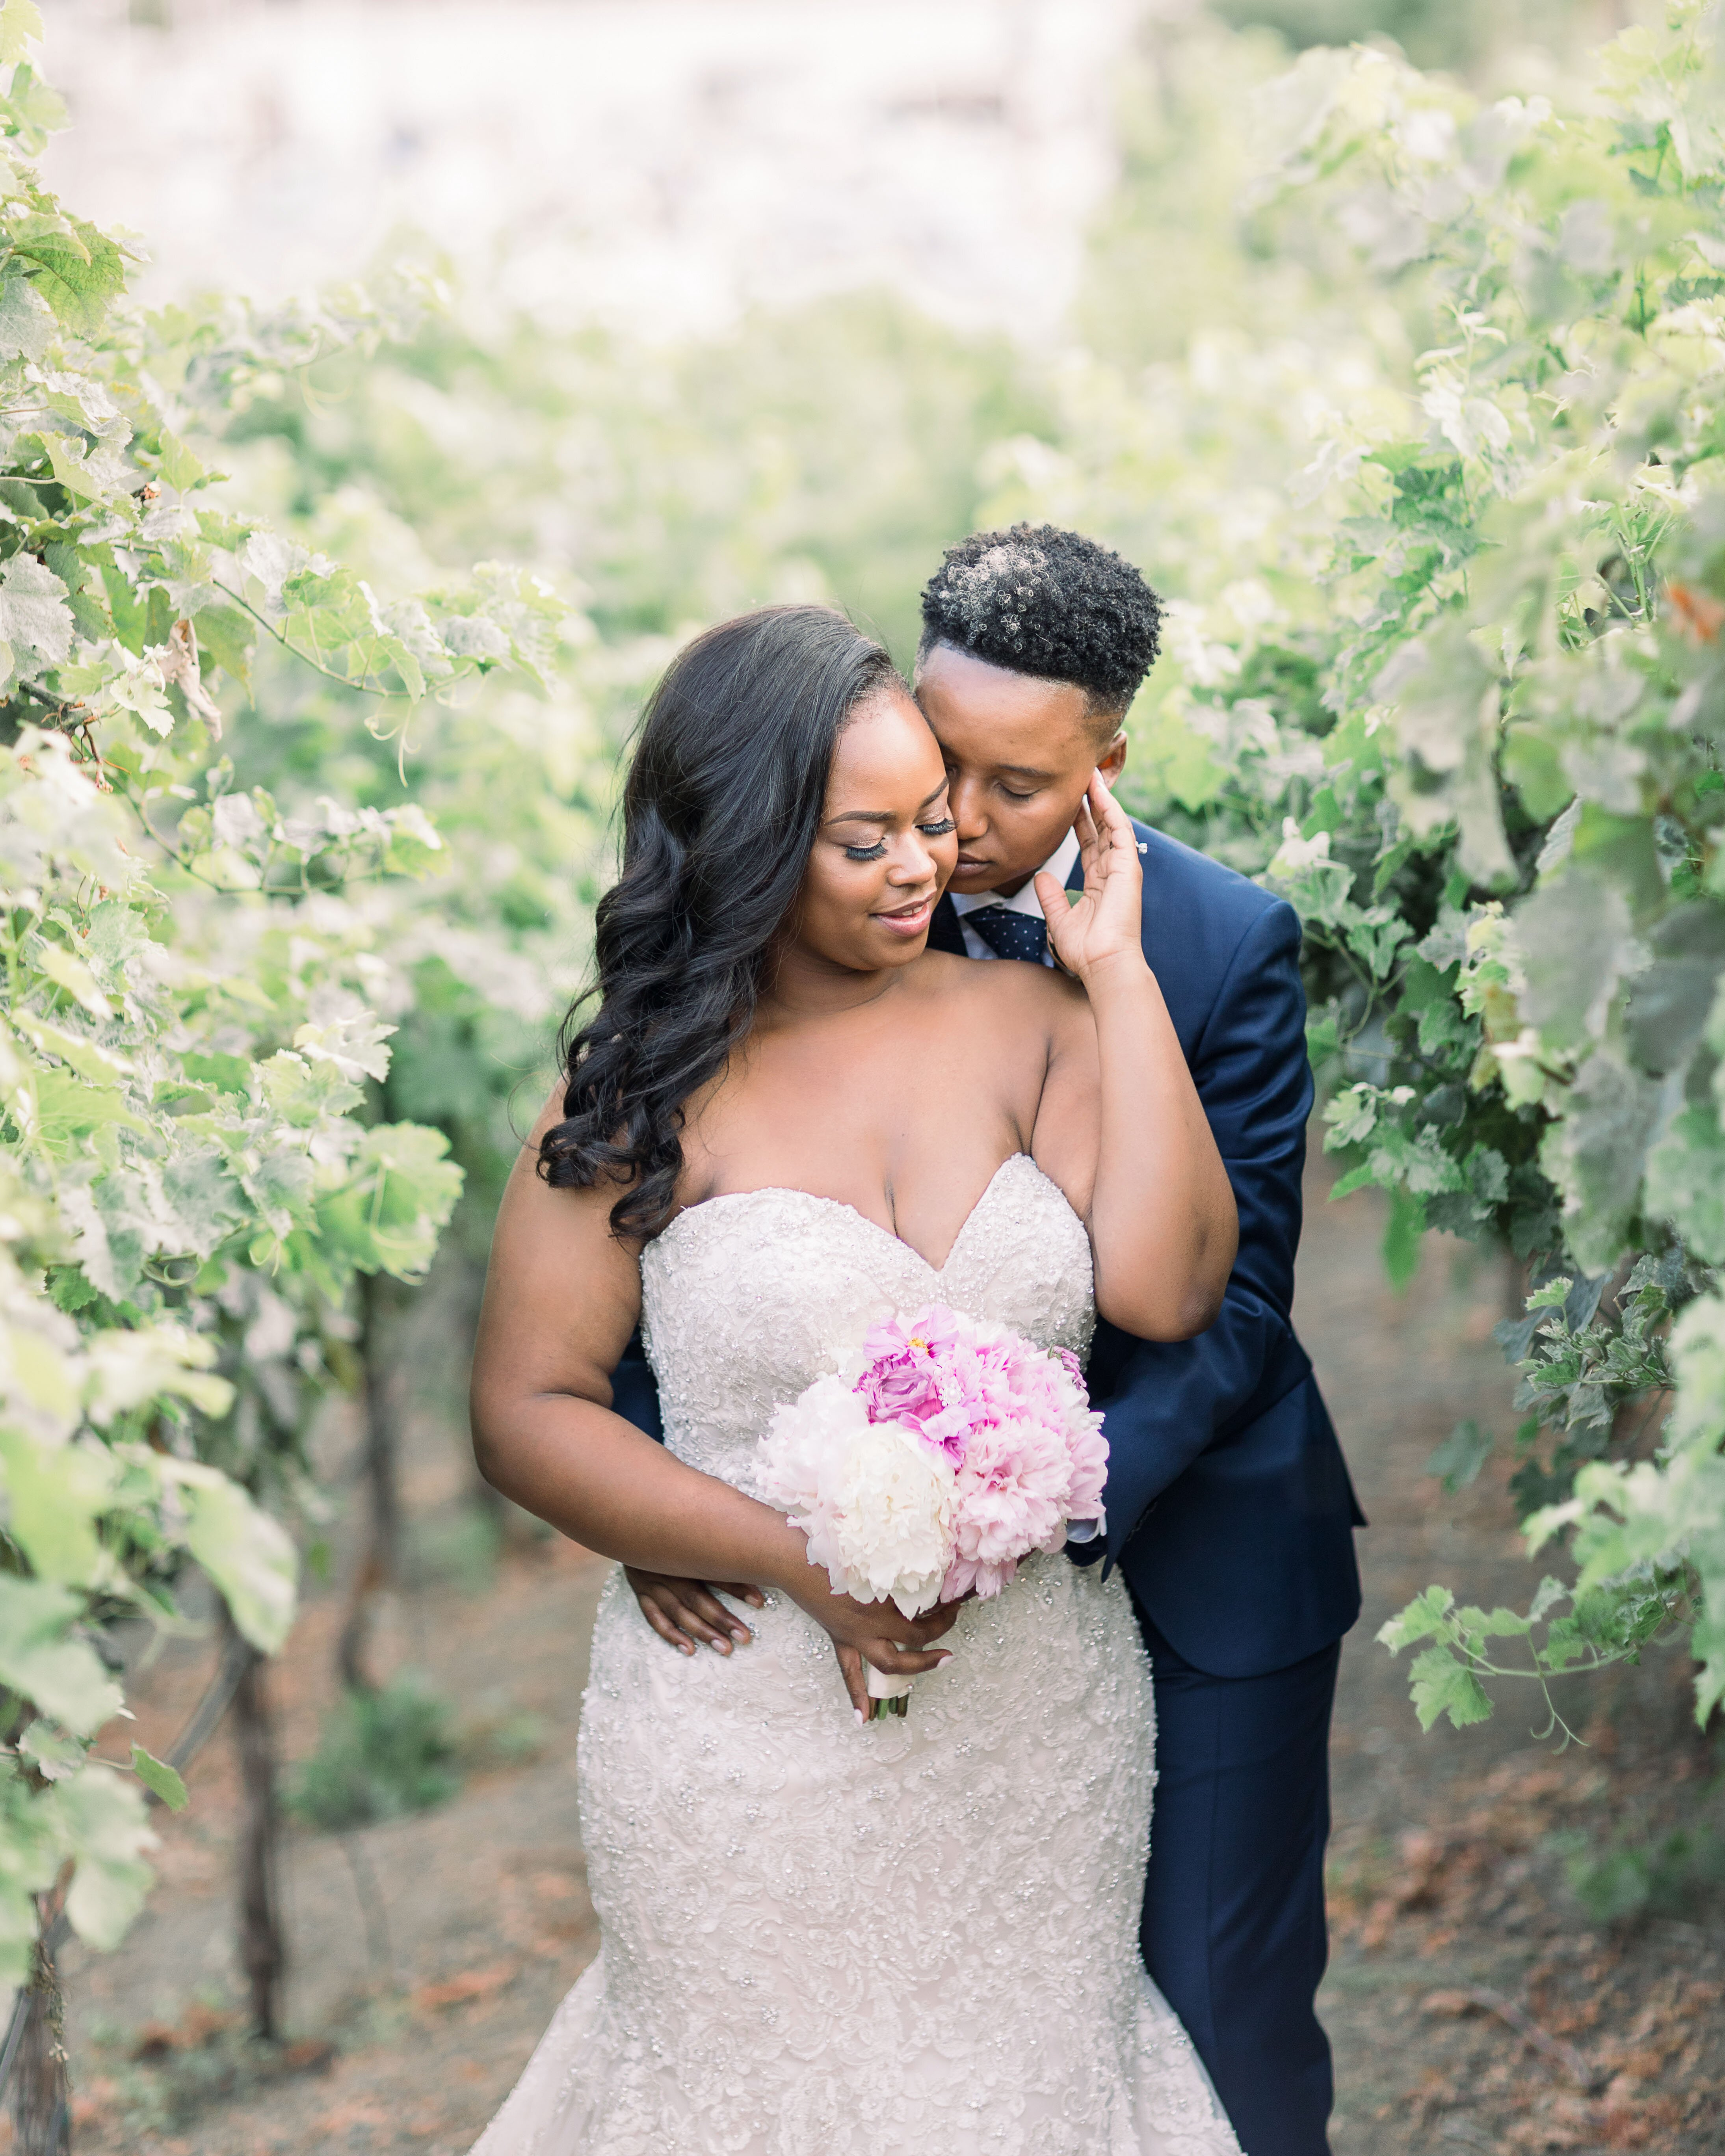 A Champagne And Blush Color Palette Set The Tone For This Rustic